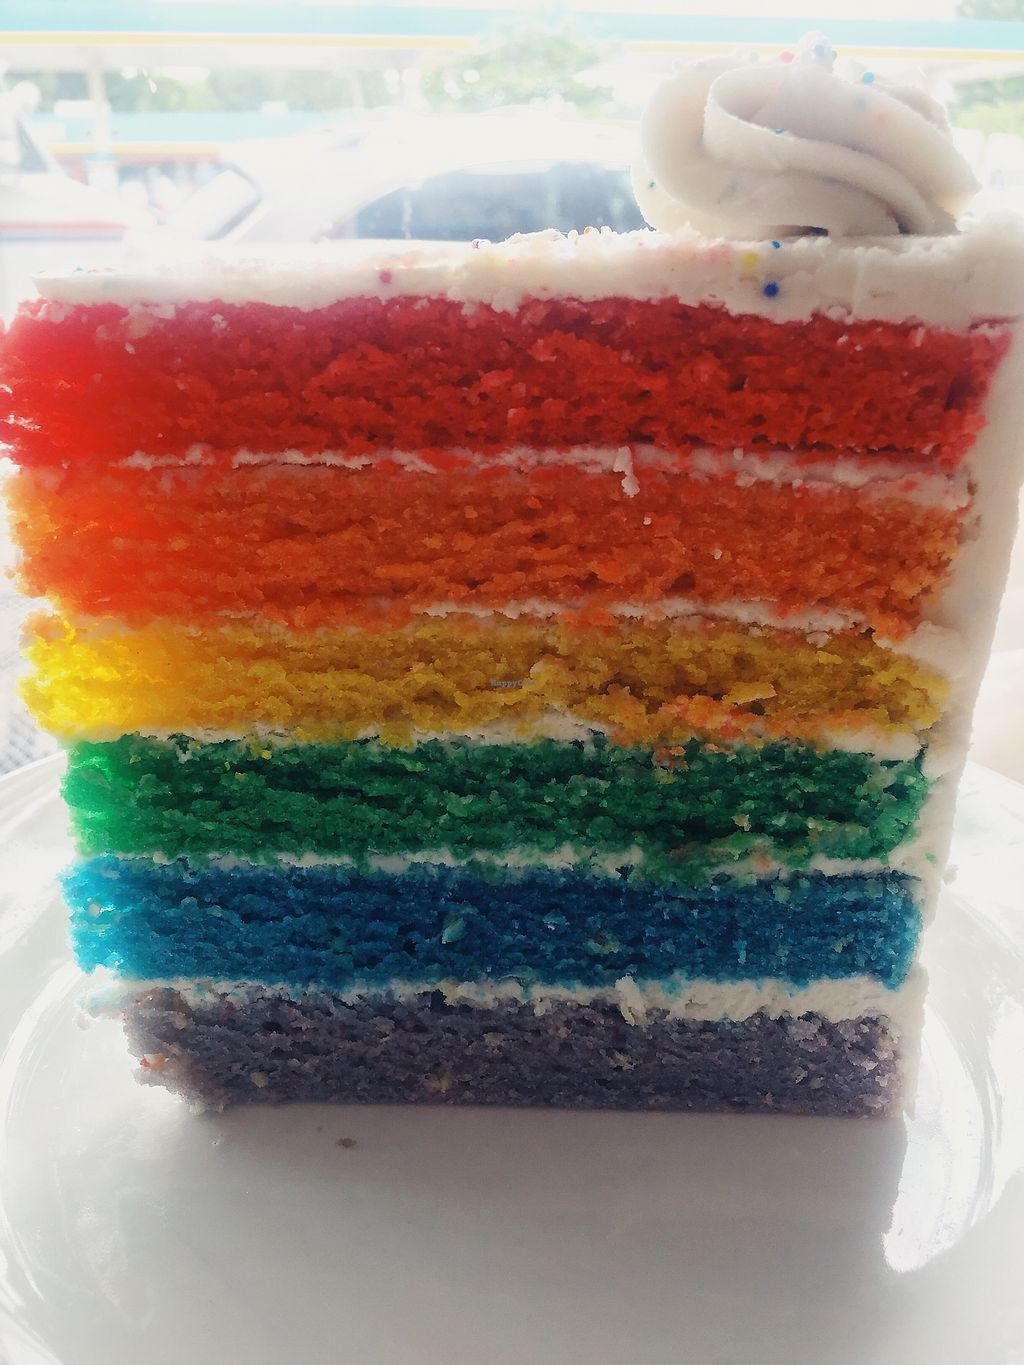 """Photo of Dulce Vegan Bakery and Cafe  by <a href=""""/members/profile/terrywashere"""">terrywashere</a> <br/>pride cake.  <br/> June 29, 2017  - <a href='/contact/abuse/image/26735/274588'>Report</a>"""